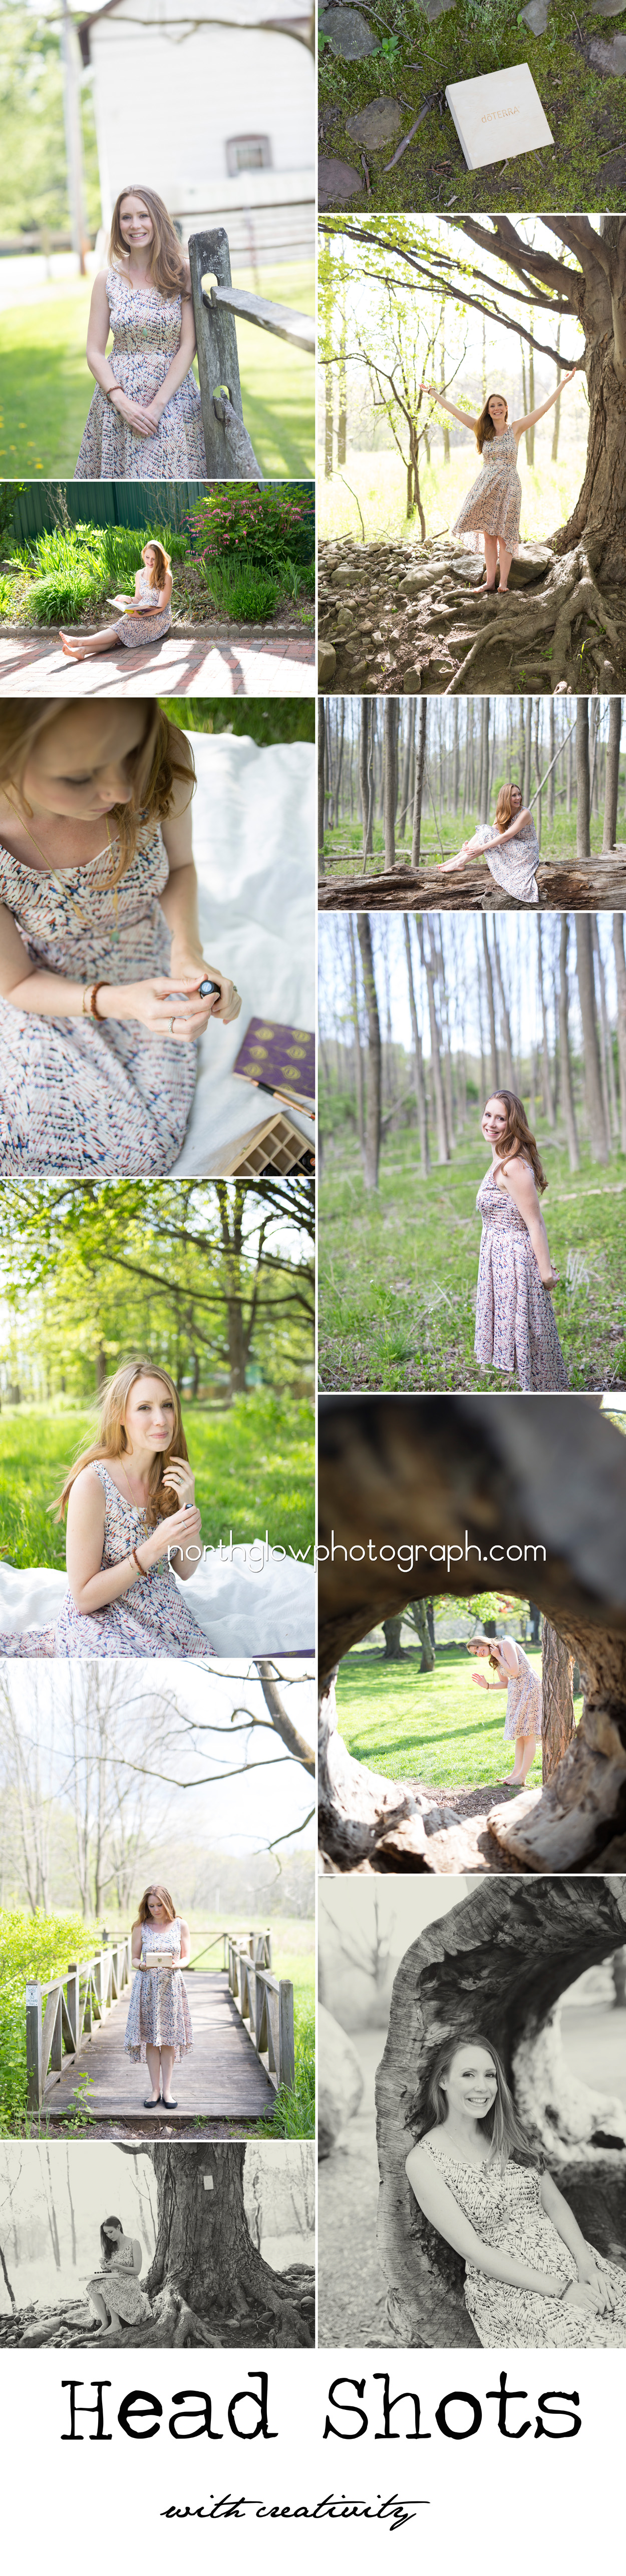 Allison Headshots | NorthGlow Photography